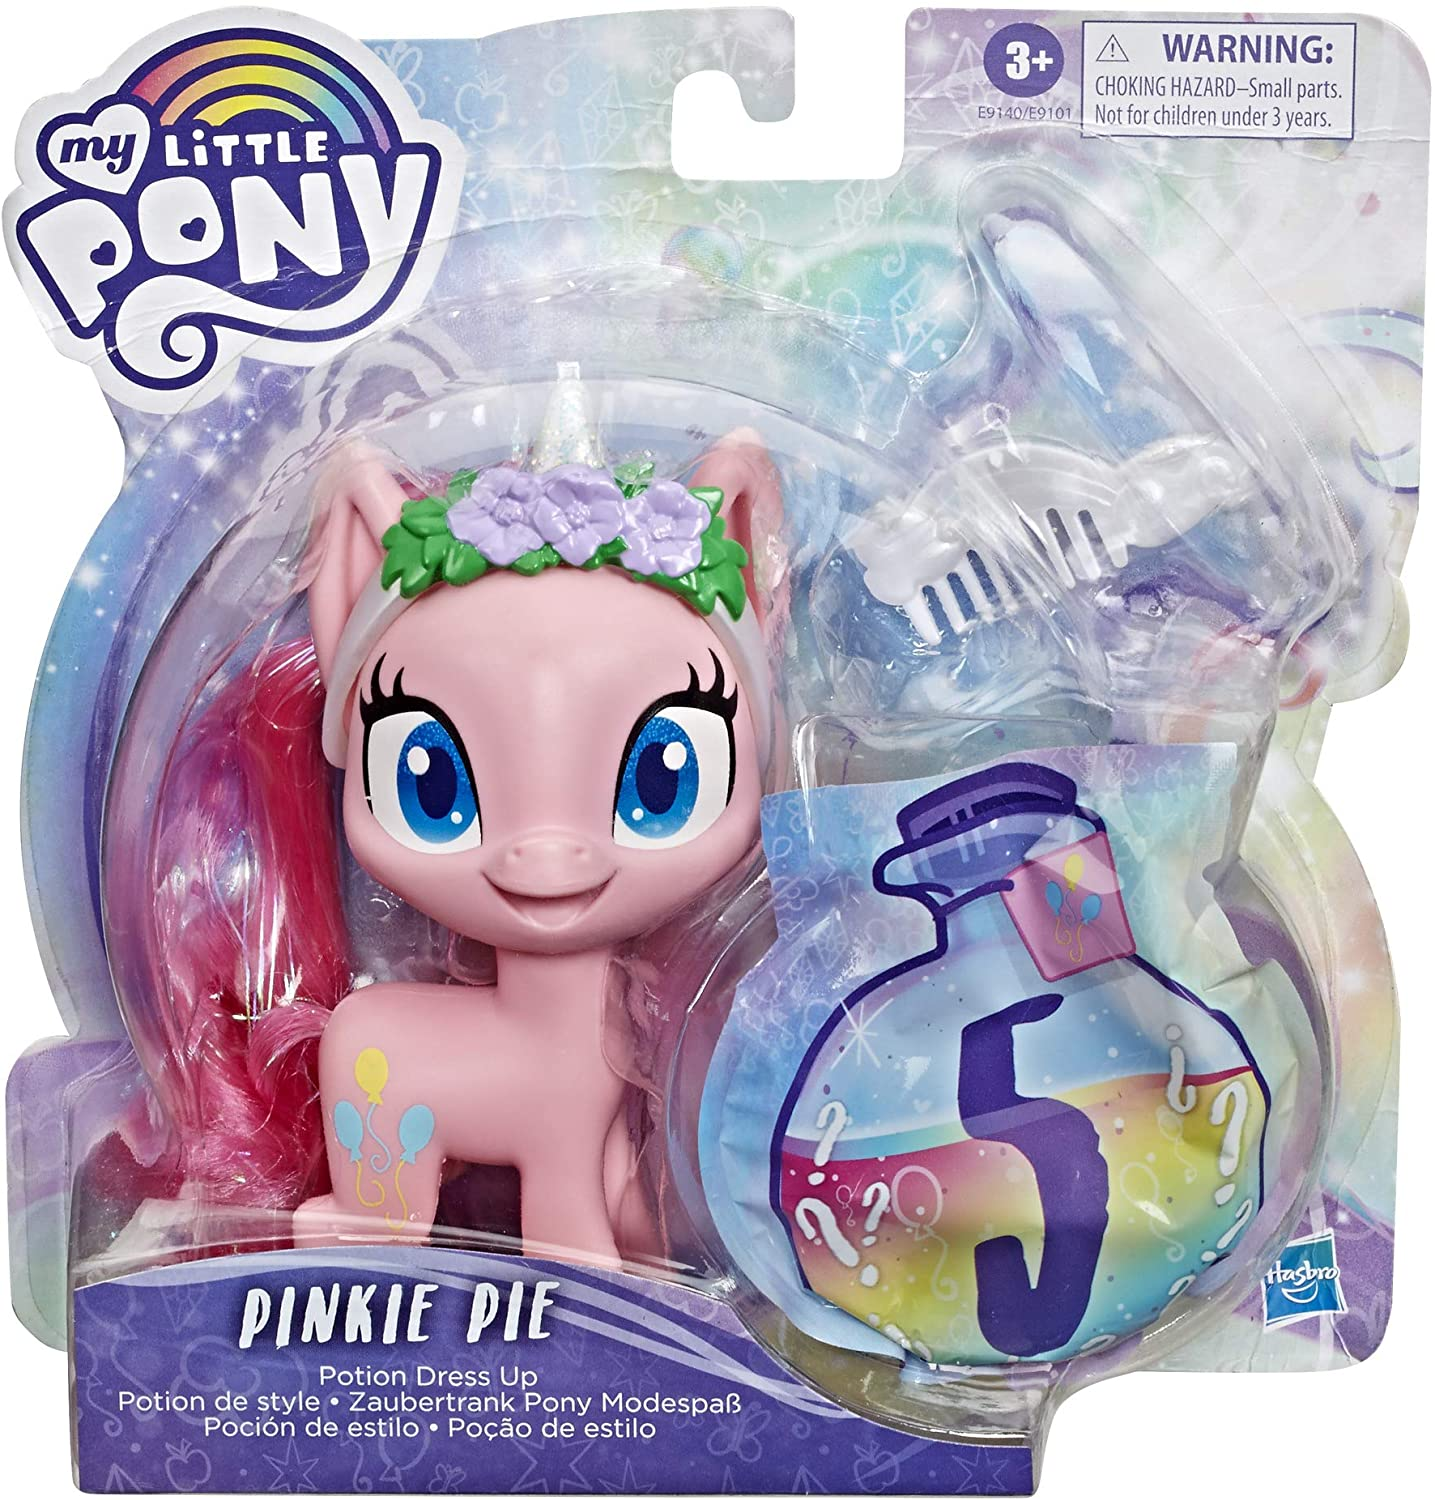 MLP Pinkie Pie Dress Up Figure 1